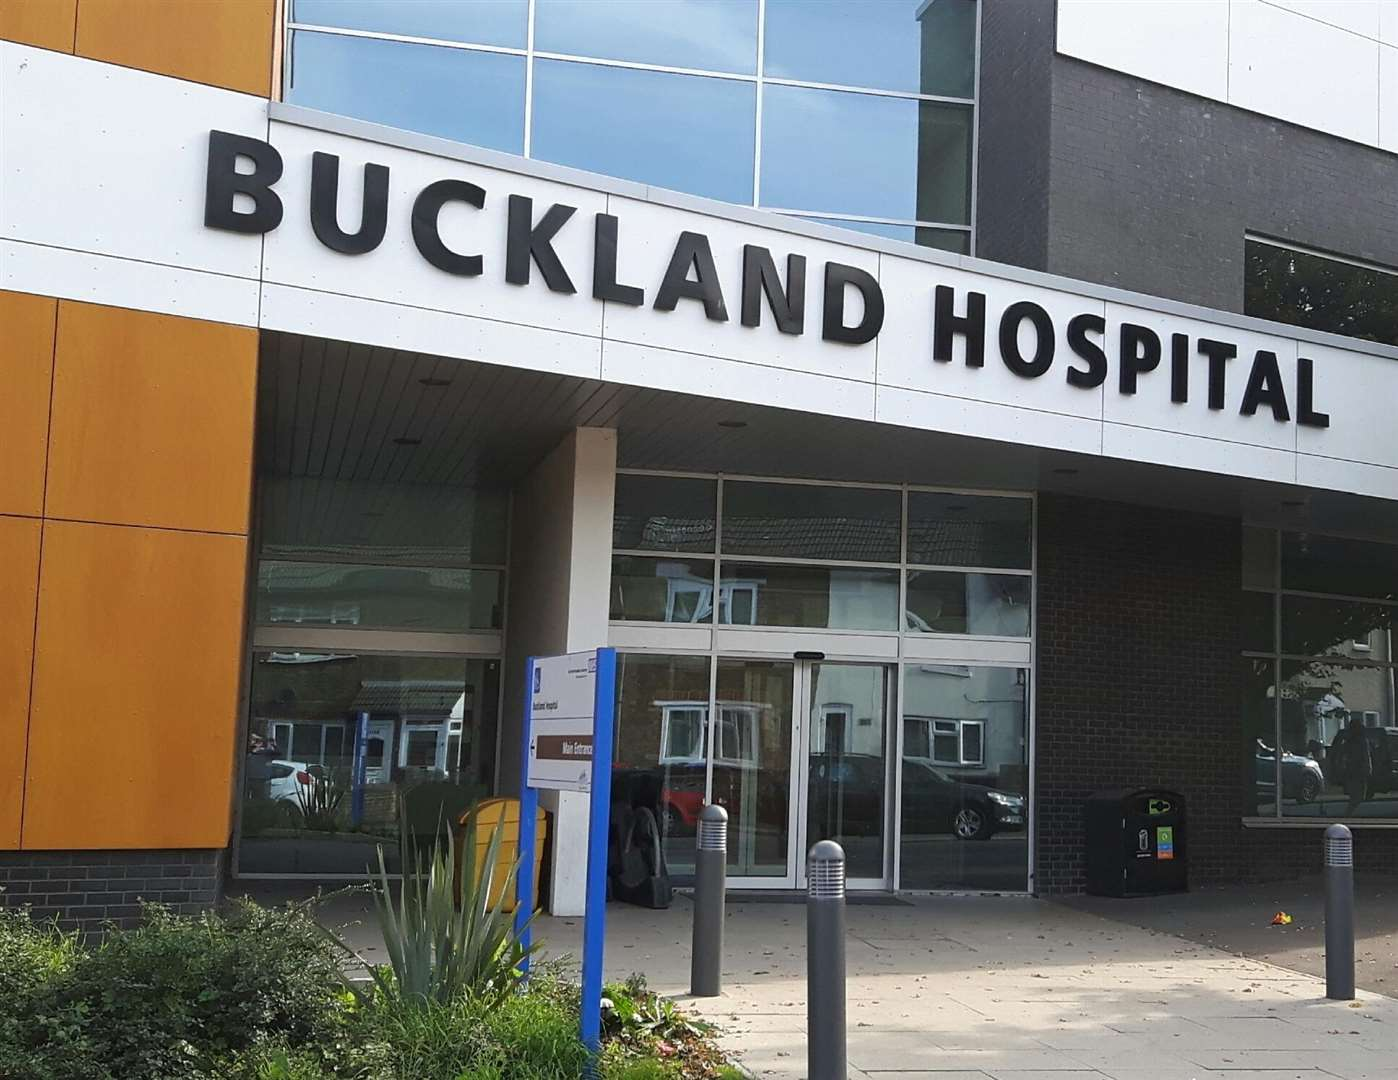 A lack of working shifts meant dialysis patients had to walk up stairs to receive treatment one day at Buckland Hospital